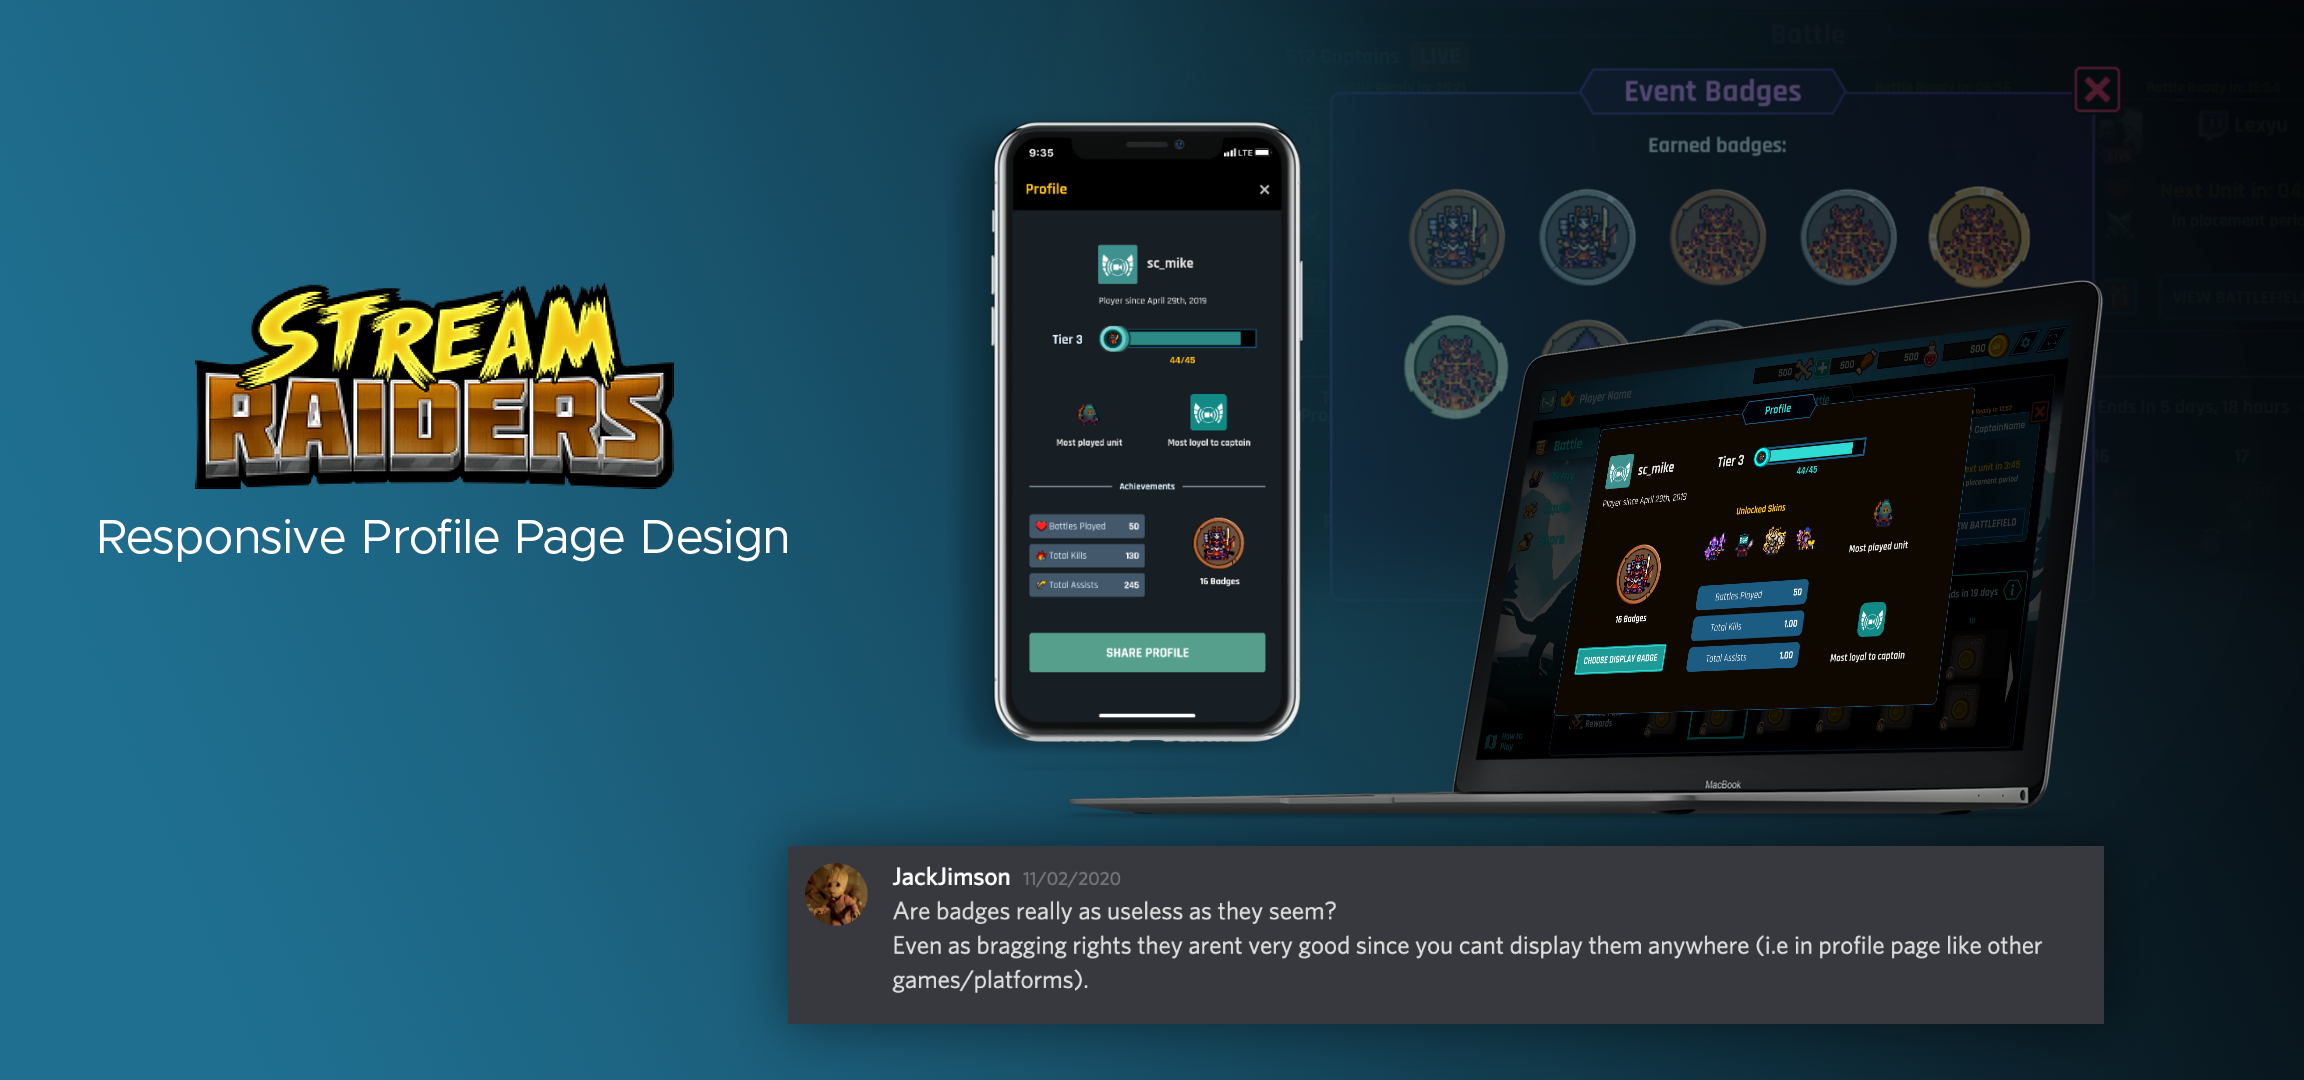 StreamRaiders-Cover-Responsive-Profile-Page